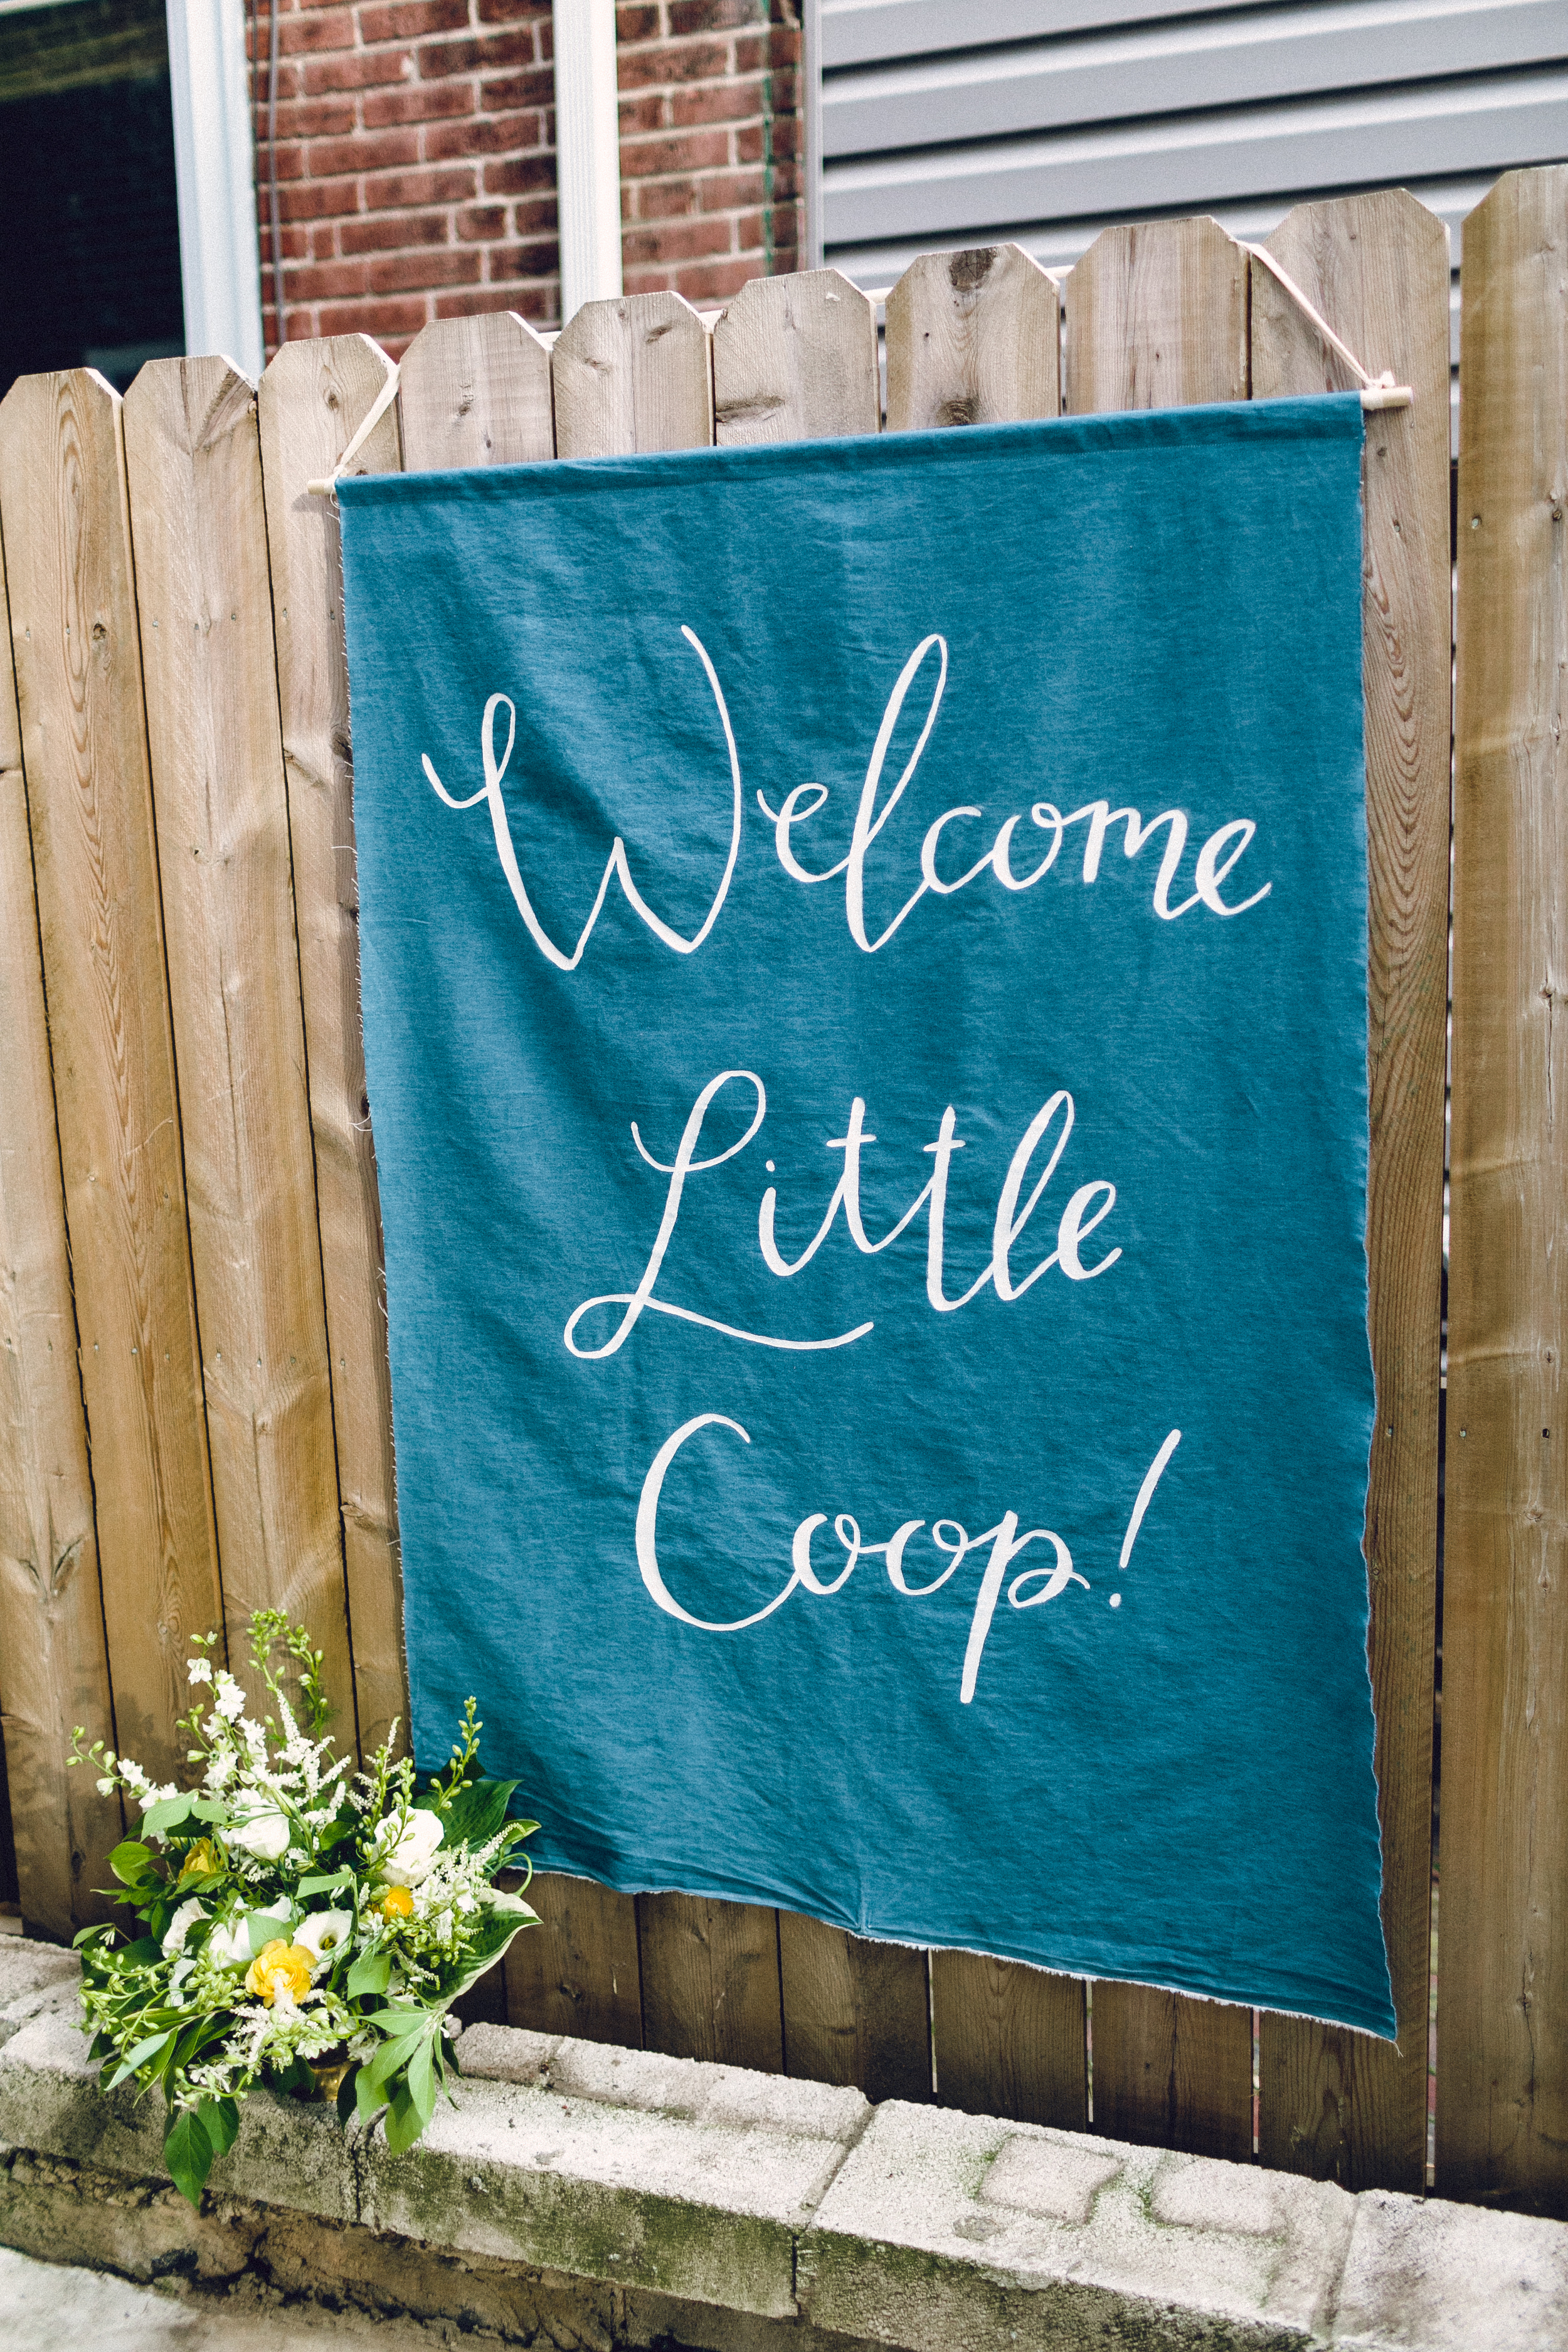 fabric welcome banner by hello, bird. // photo courtesy of danfredo photos + films